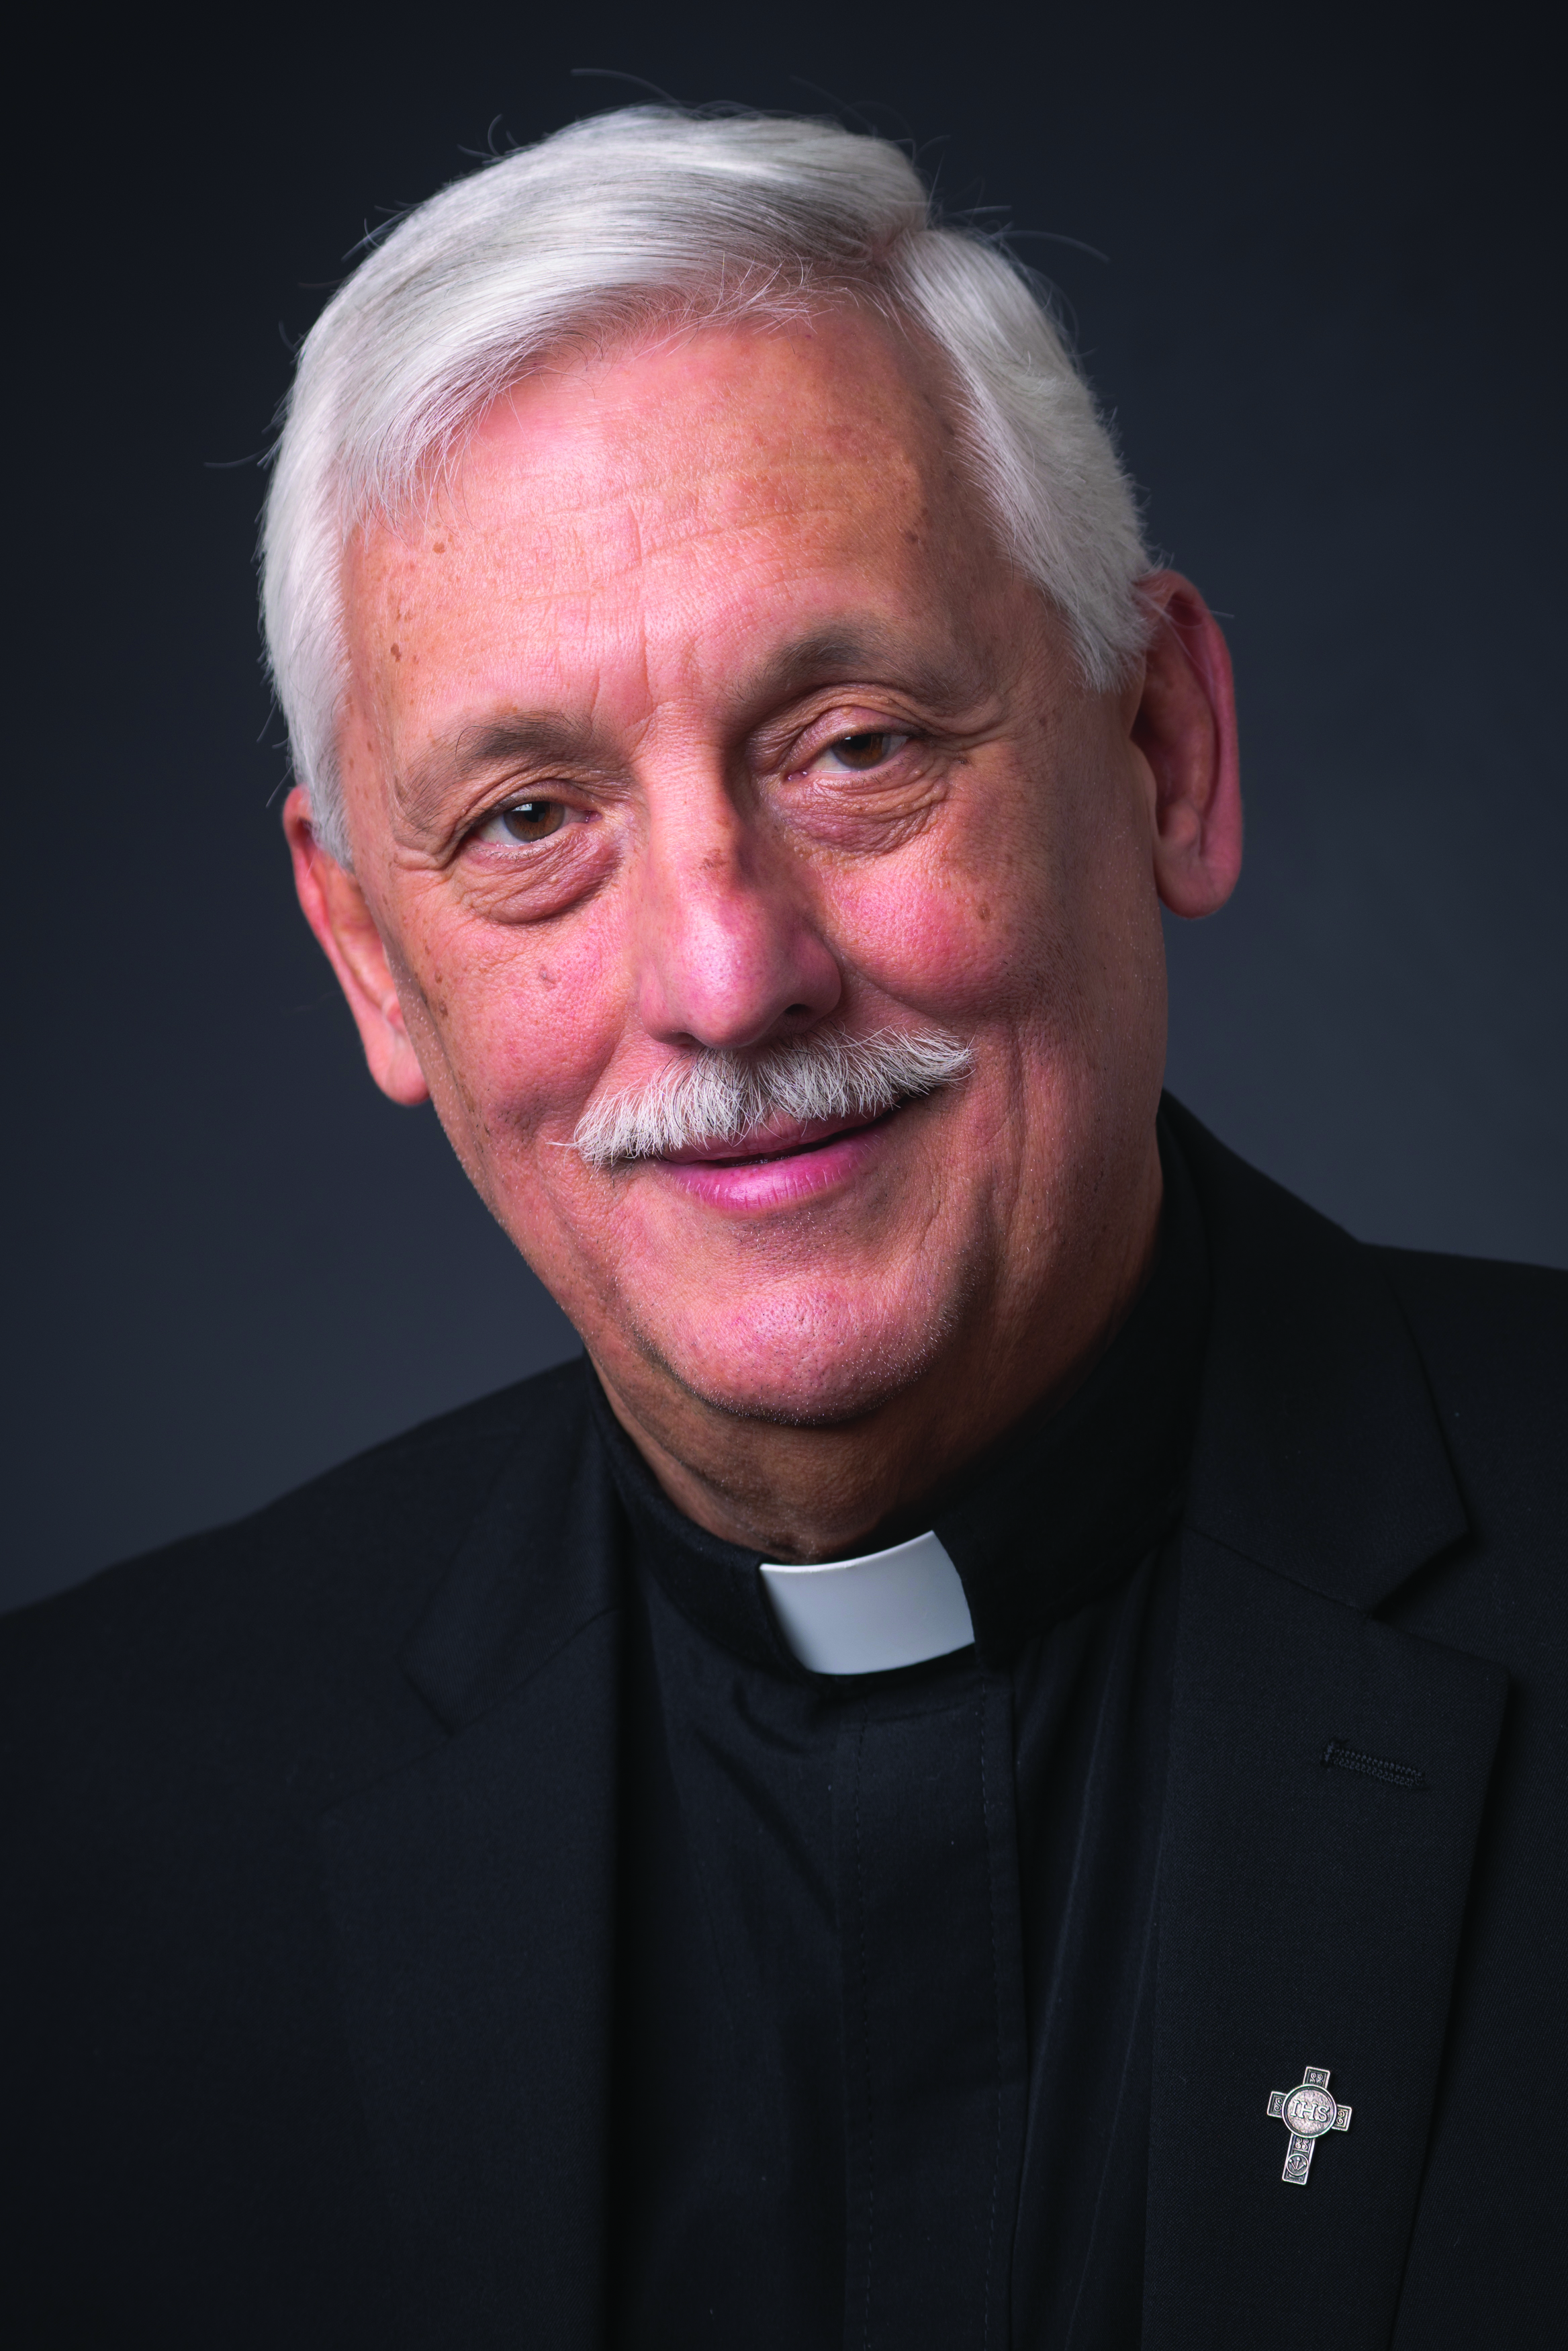 Father Arturo Sosa, SJ, the New Father General of the Society of Jesus